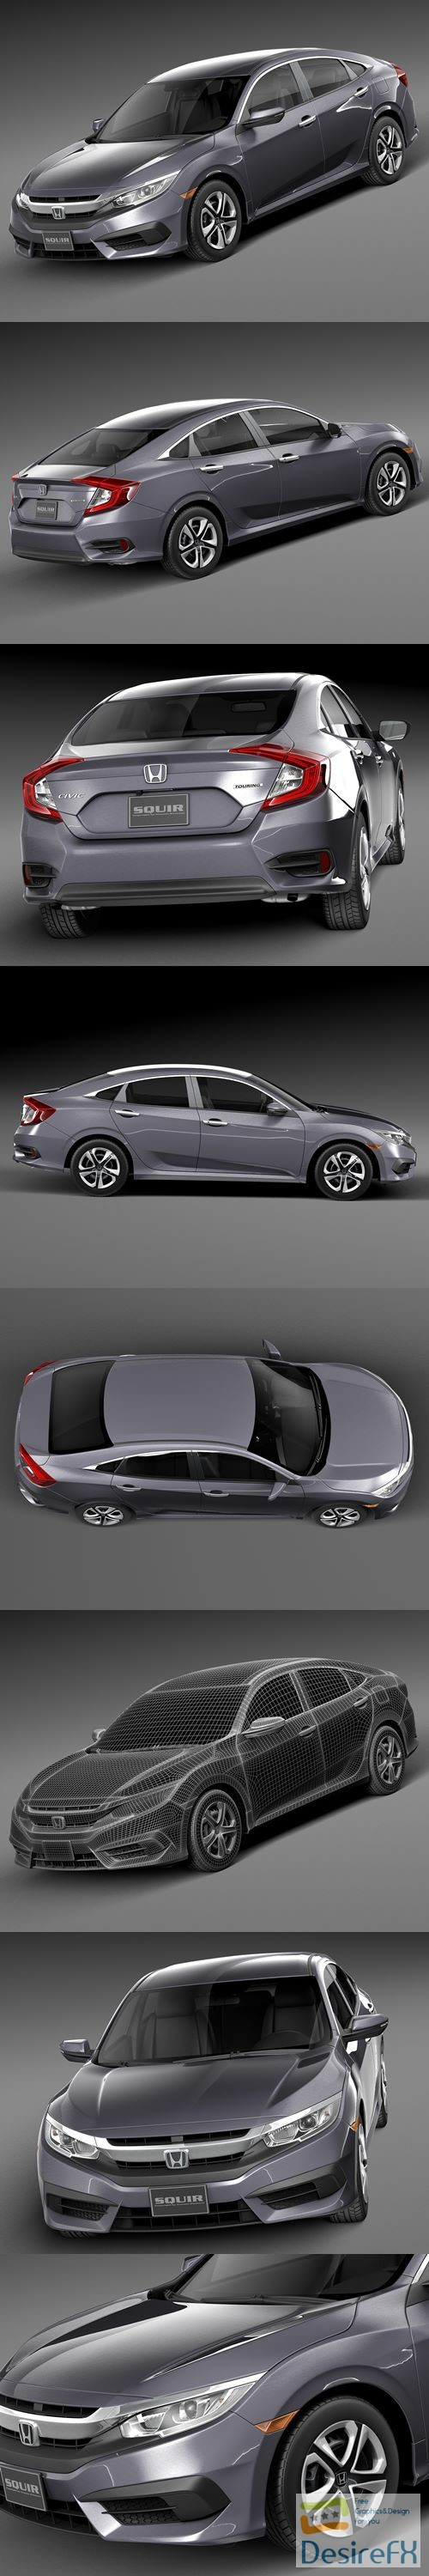 Honda Civic Sedan LX 2016 3D Model